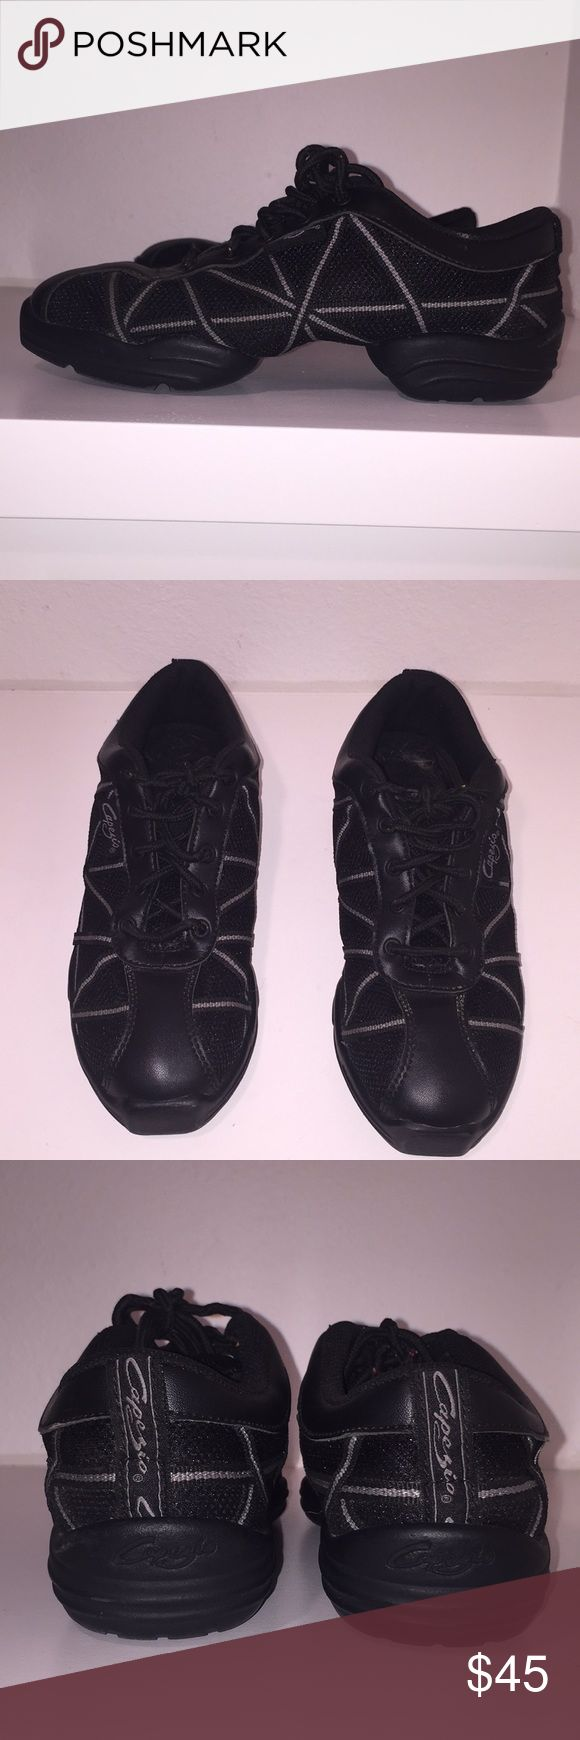 Capezio Dance Sneakers sz 7.5 Only wore 2 times. Capezia Sole Dance Sneaker that you can turn easily with the Spin spot. This shoe is great for Zumba, Hip Hop, Jazz Dance, ballroom classes. Capezio Shoes